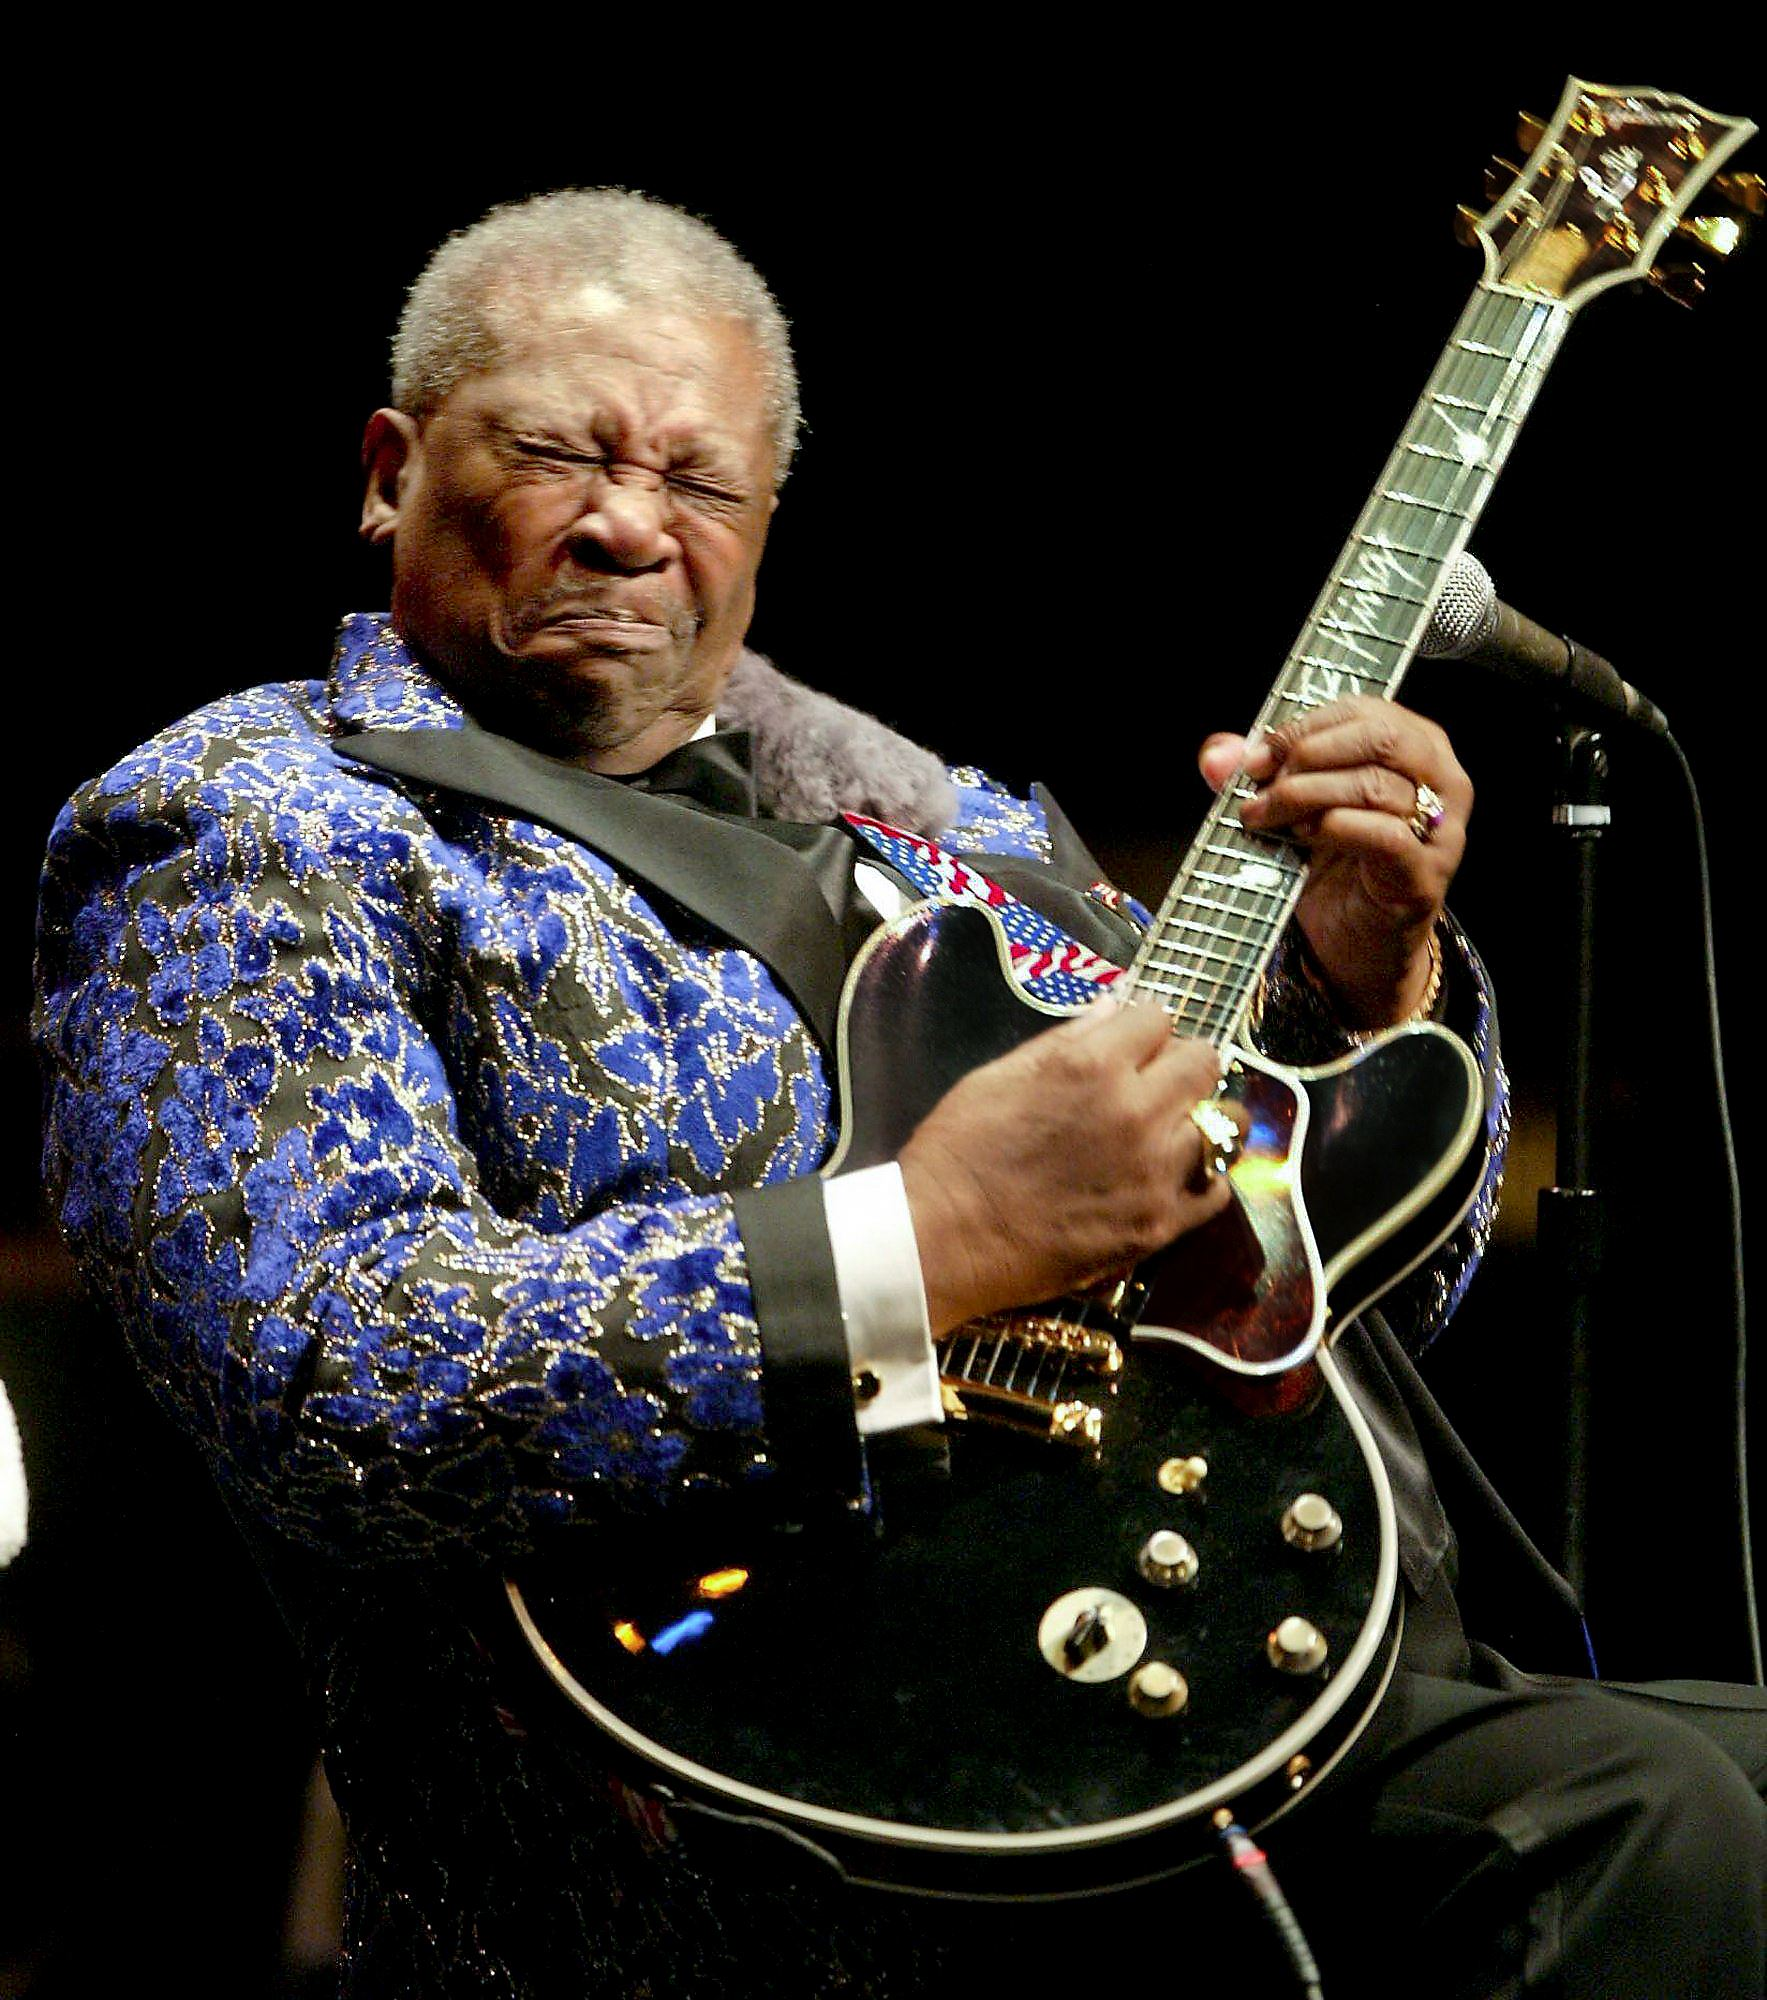 b b king Meet famed guitarist bb king, the 'king of the blues,' who performed blues and r&b hits for more than 50 years, at biographycom.